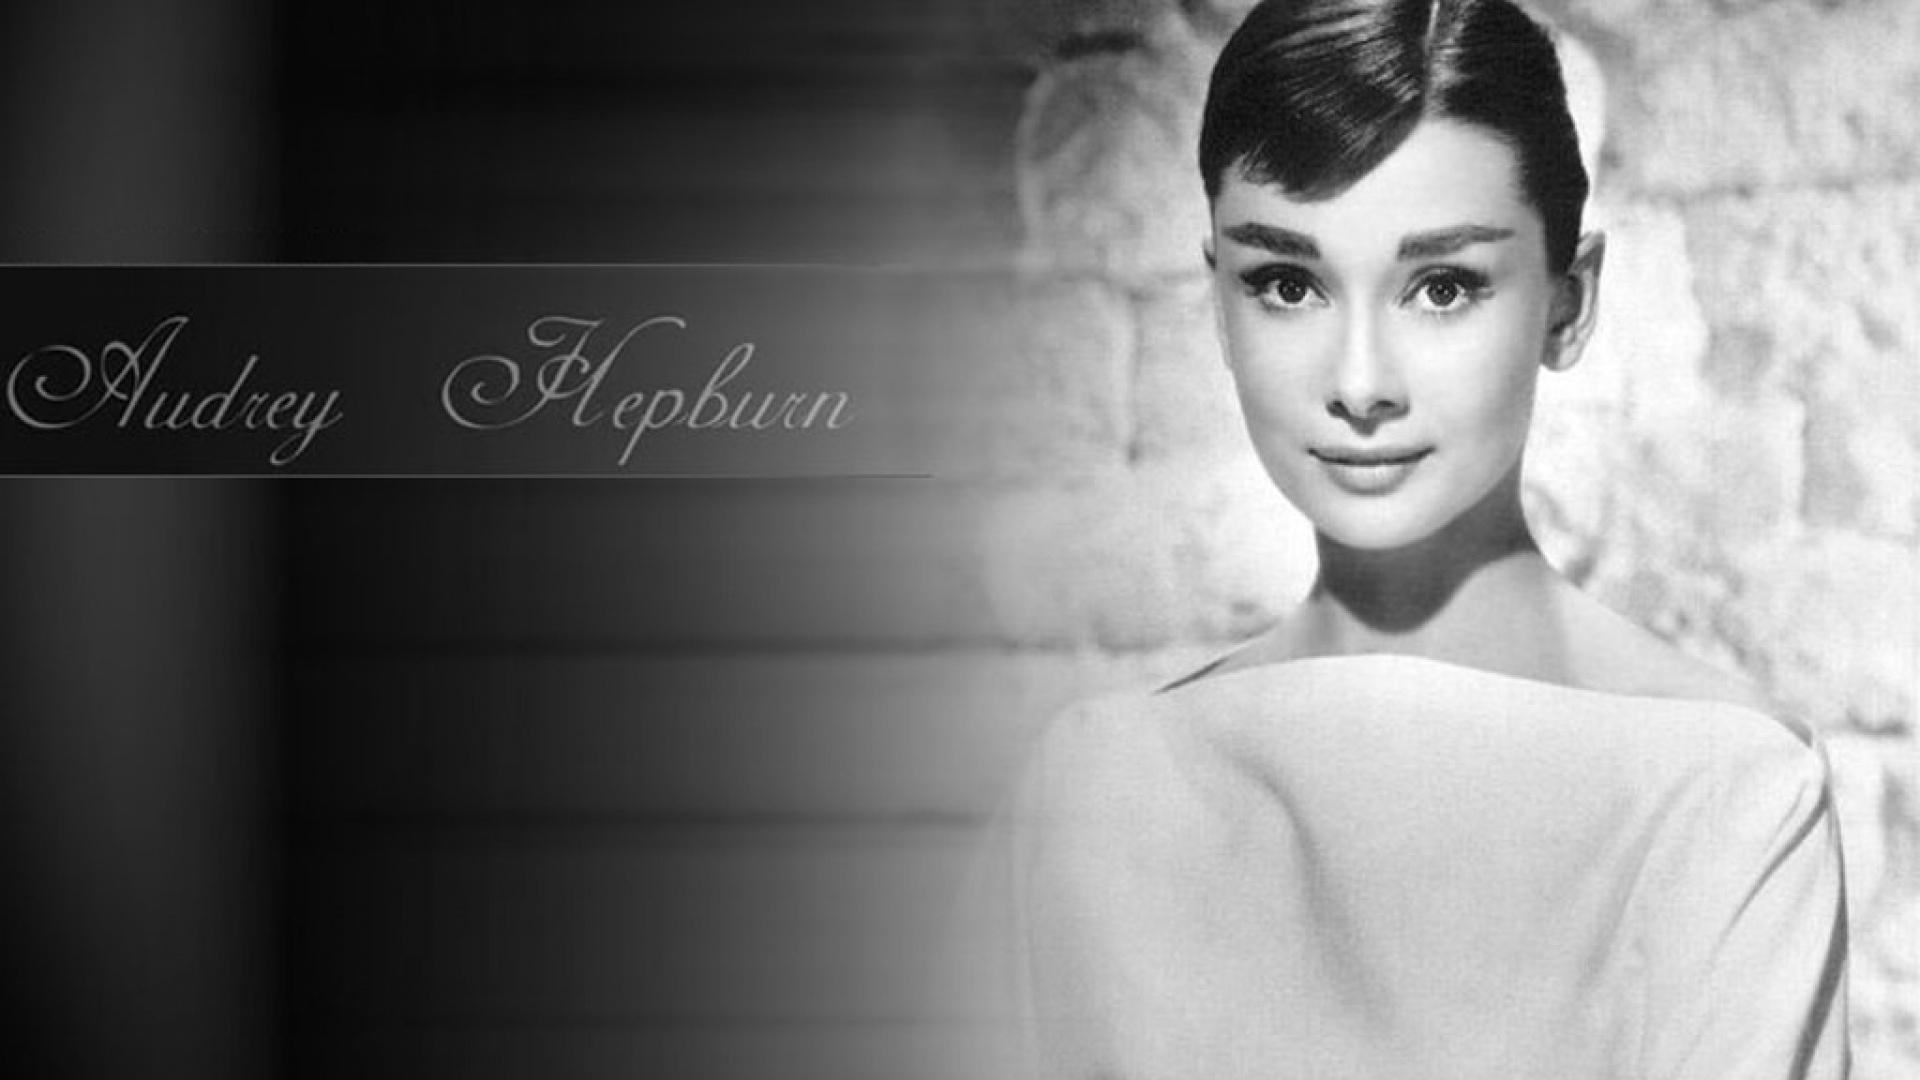 Free Download Audrey Hepburn Wallpapers 1920x1200 For Your